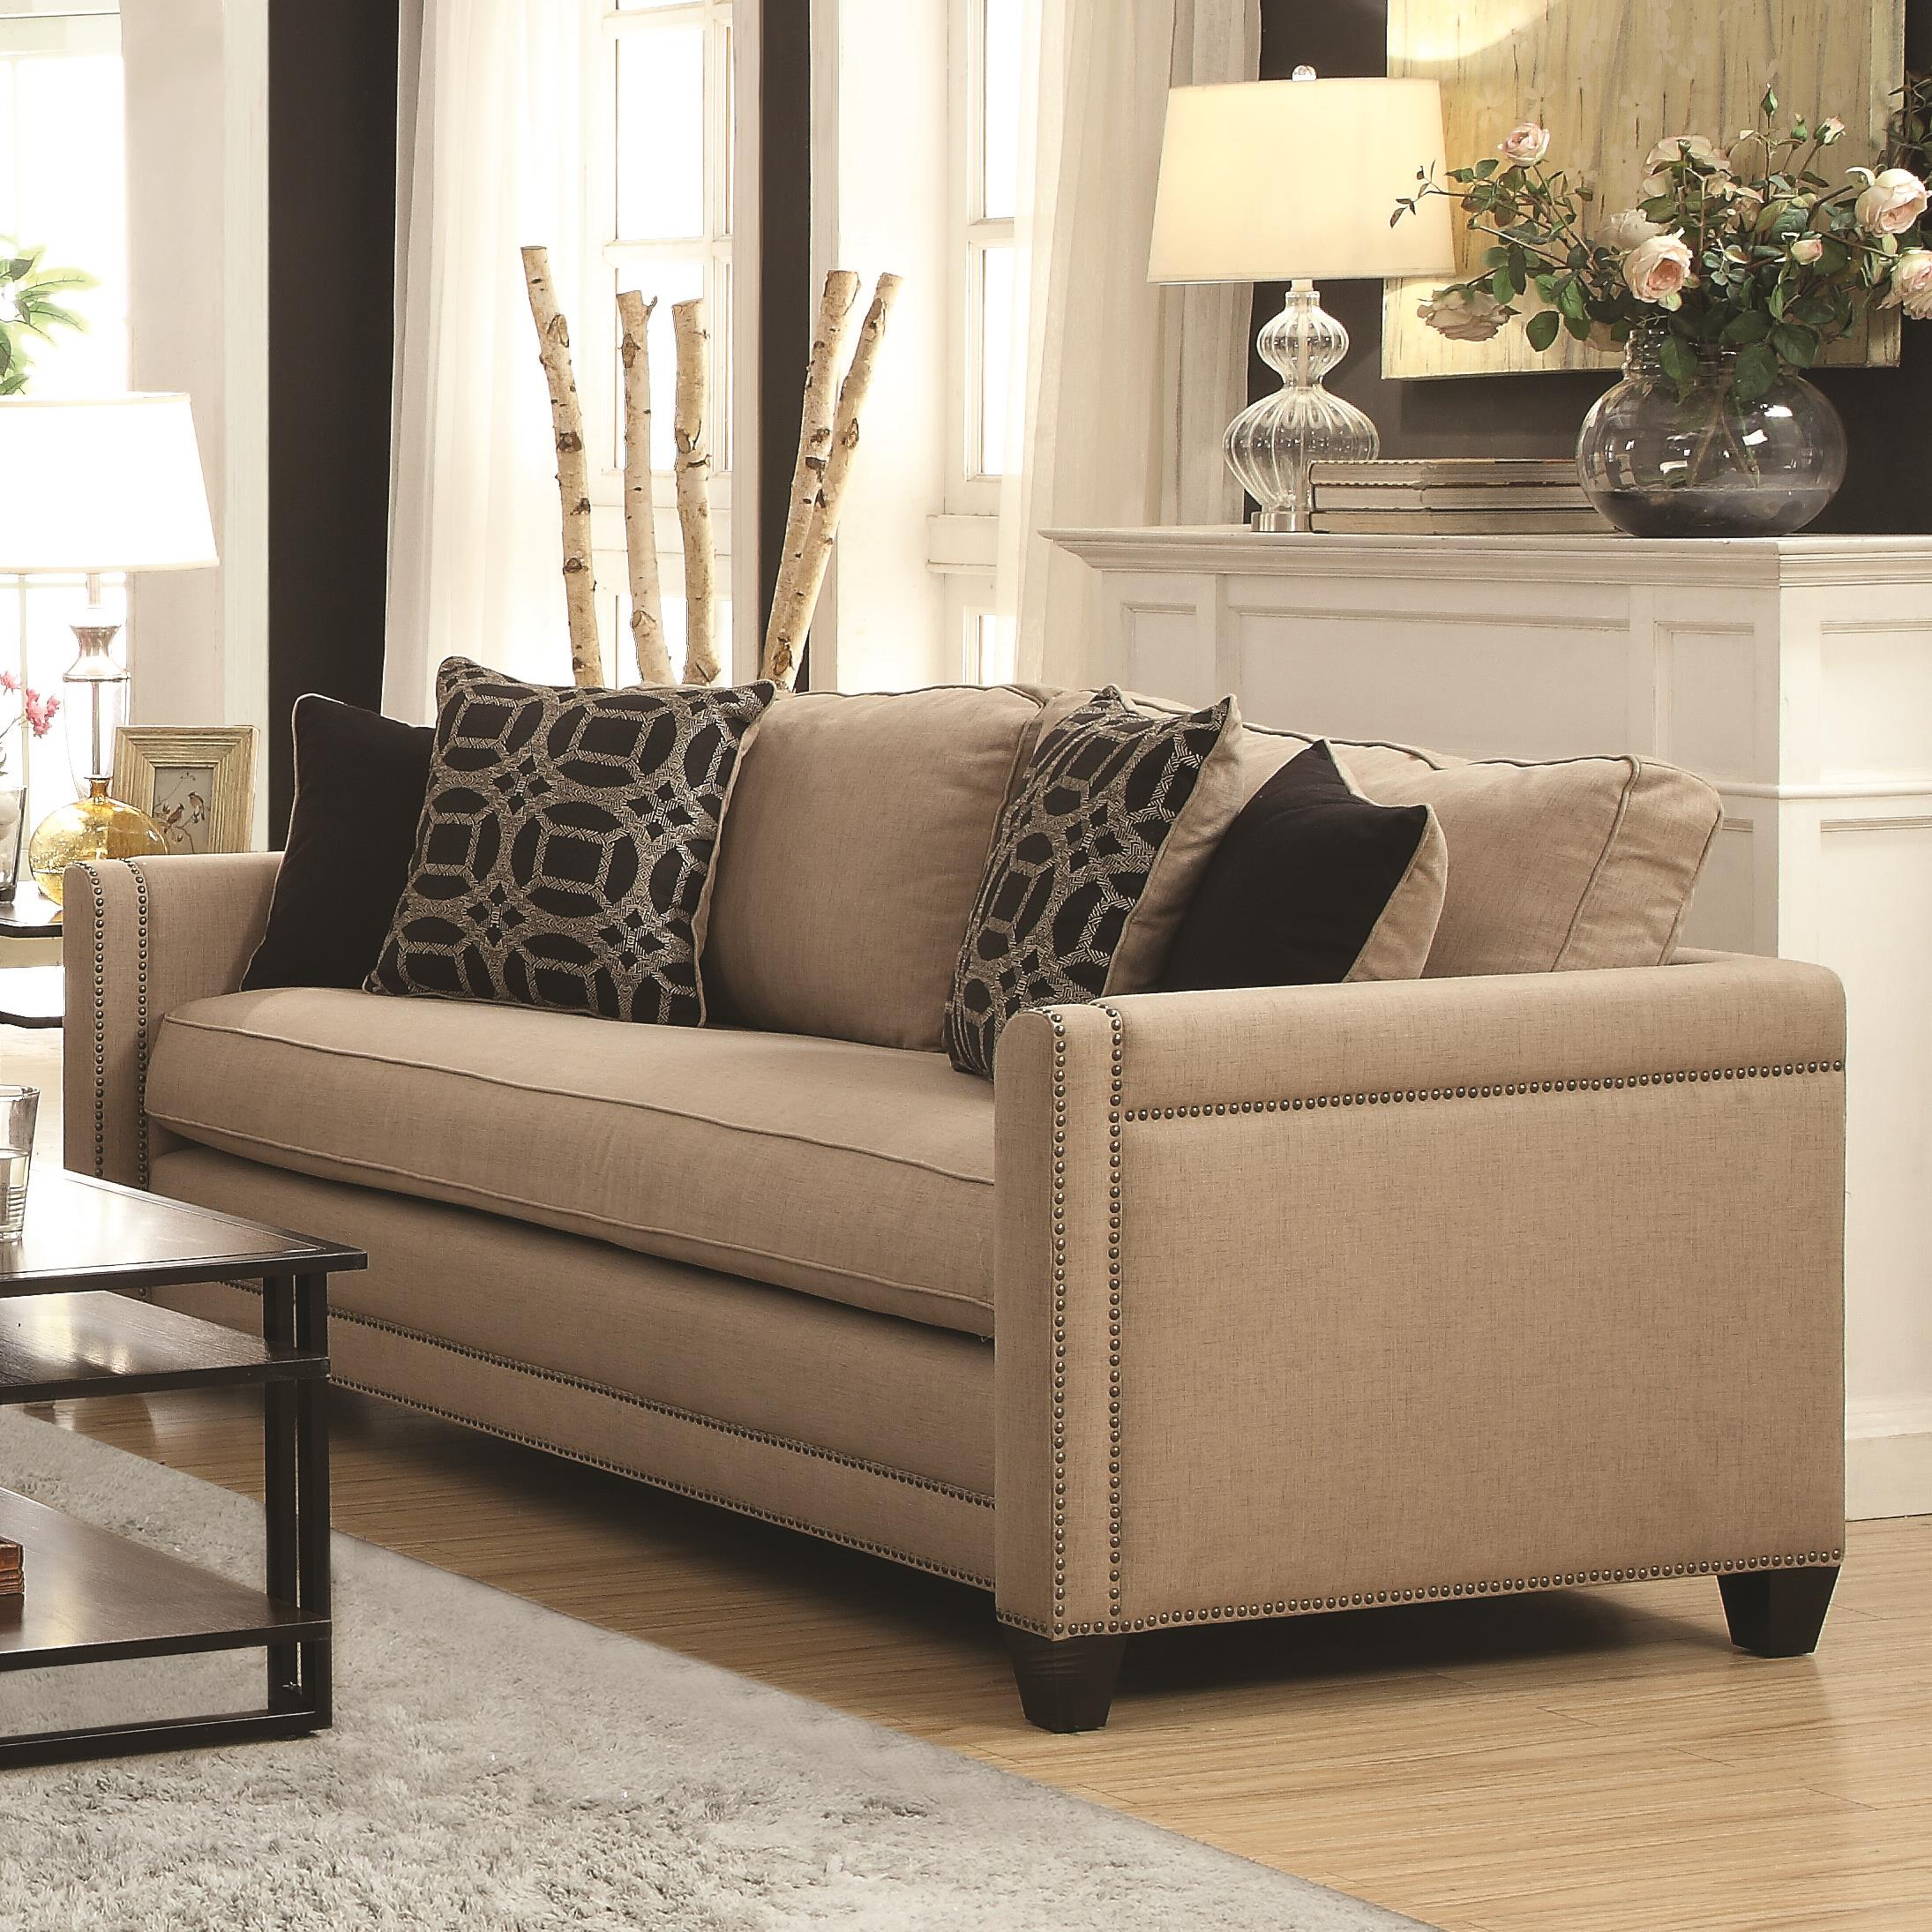 Coaster Pratten Sofa - Item Number: 505781